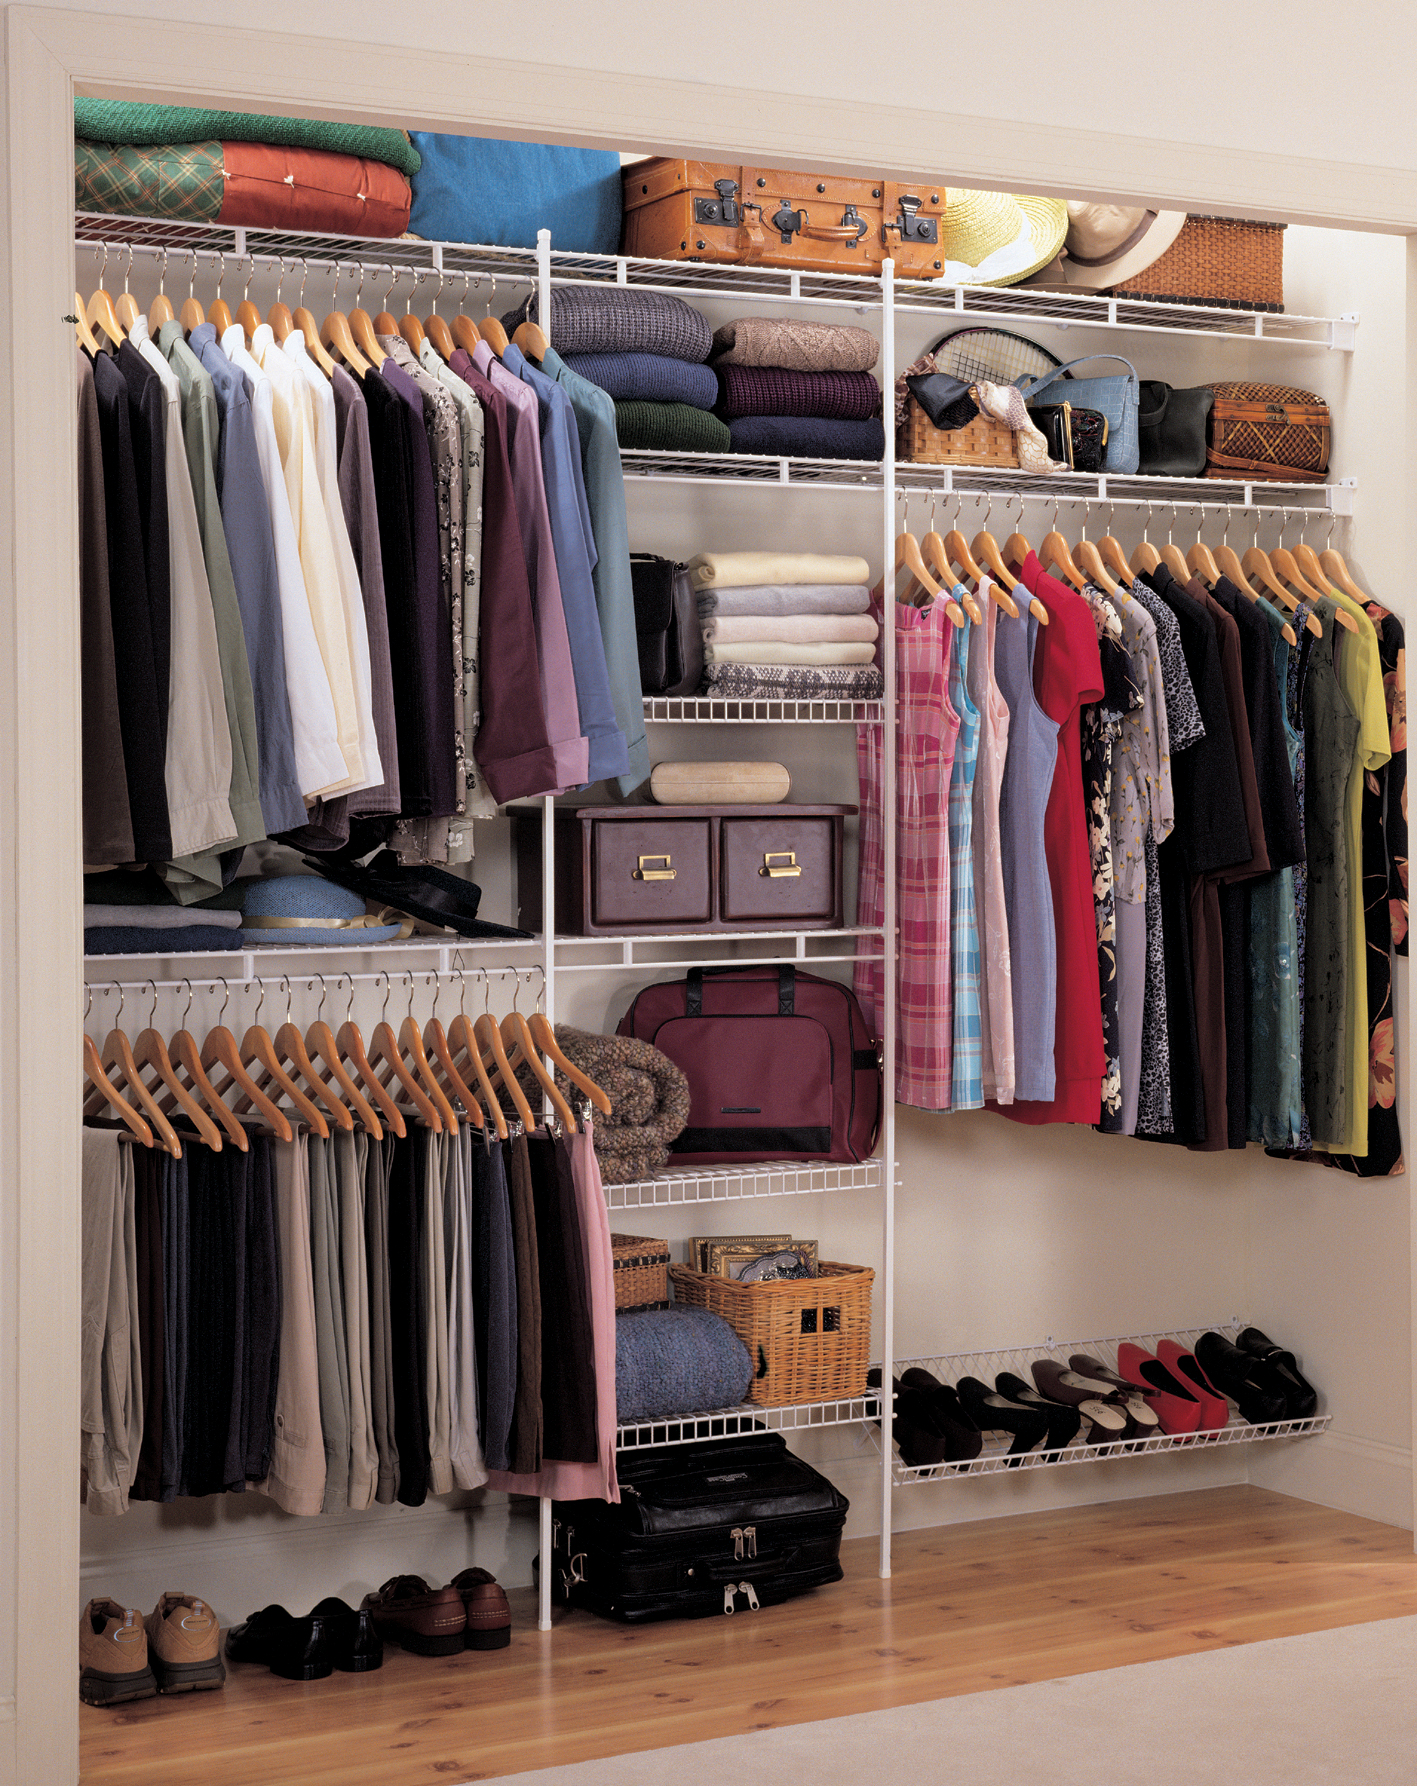 Beautiful Awesome Closetmaid Design Ideas Gallery Aislingus Aislingus. Press Public  Relations